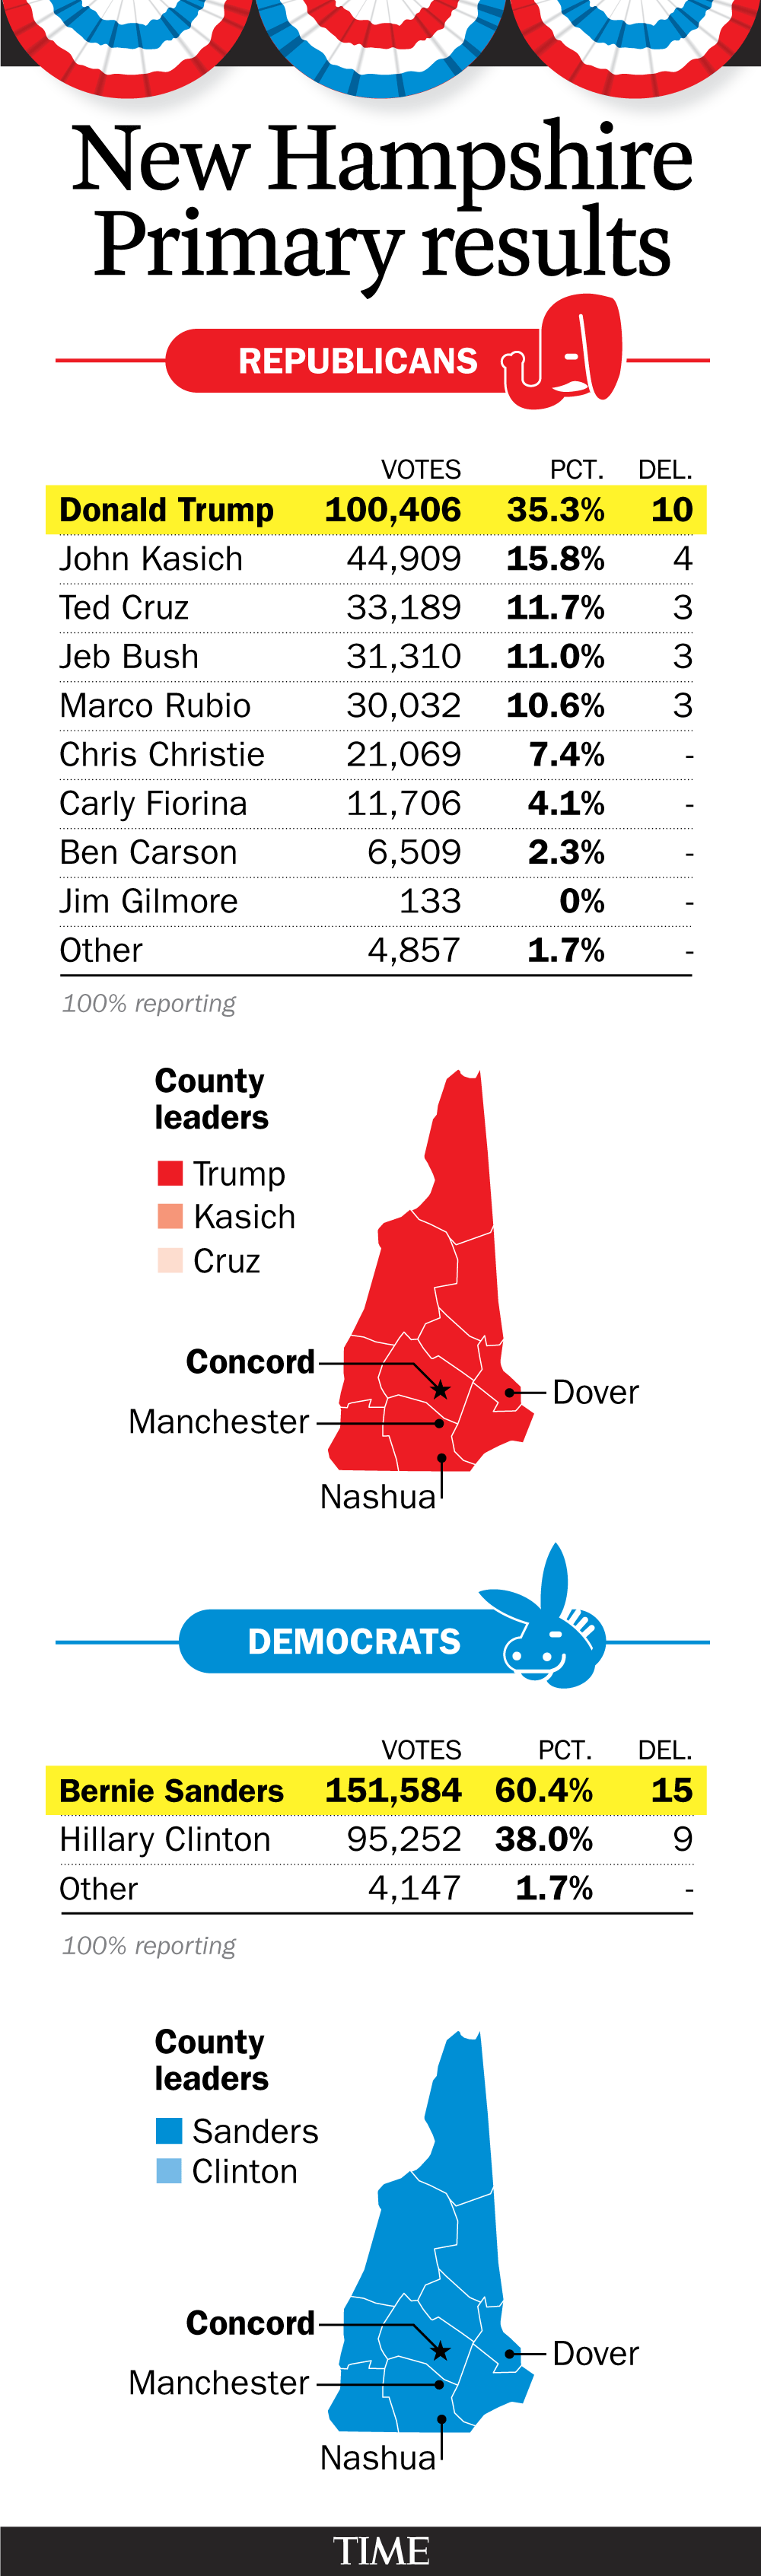 Final New Hampshire Primary results